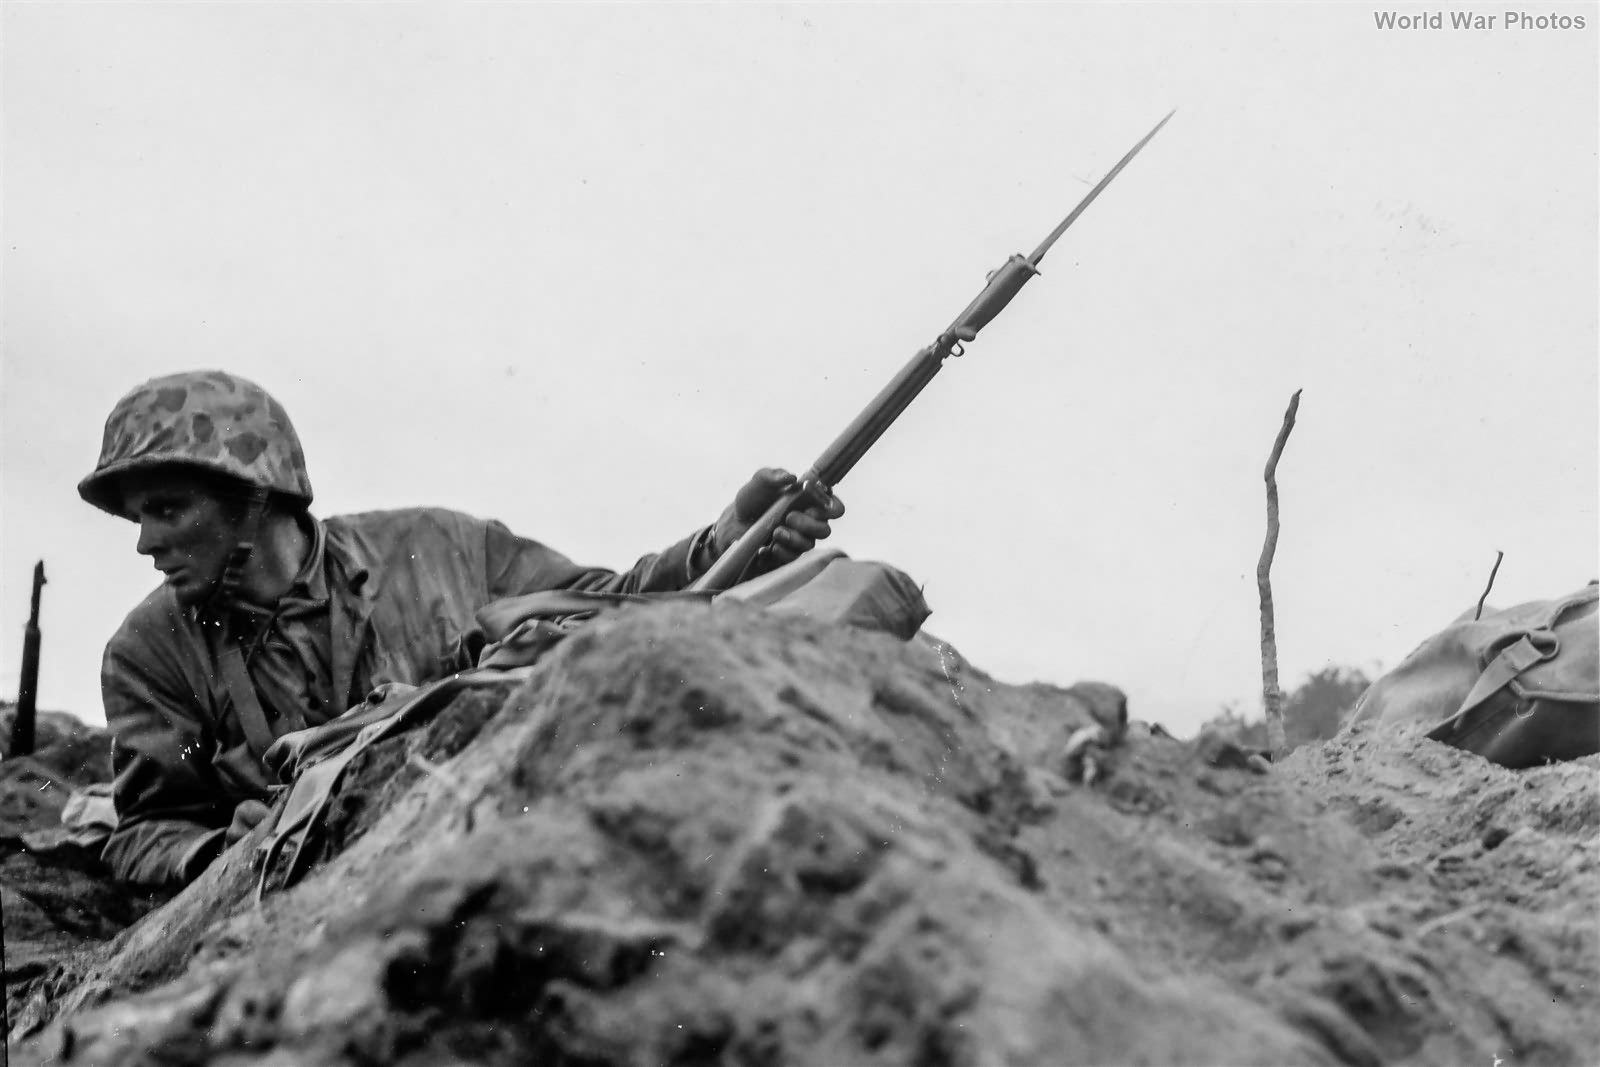 Marine Lieutenant with M1 Garand on Iwo Jima 22feb